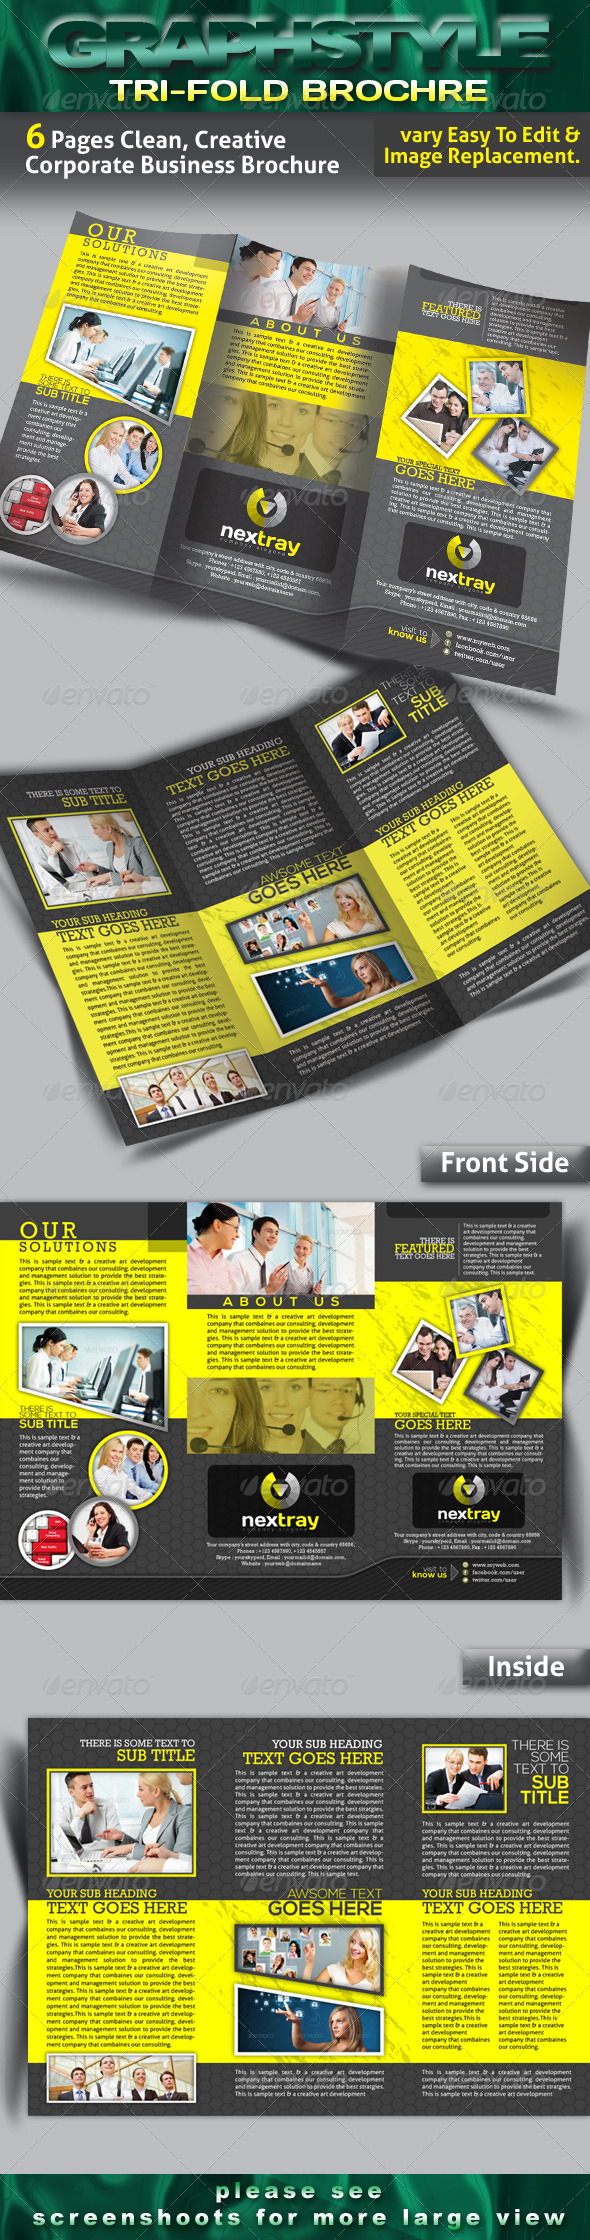 GraphicRiver nextray Tri-fold Corporate Business Brochure 4299077